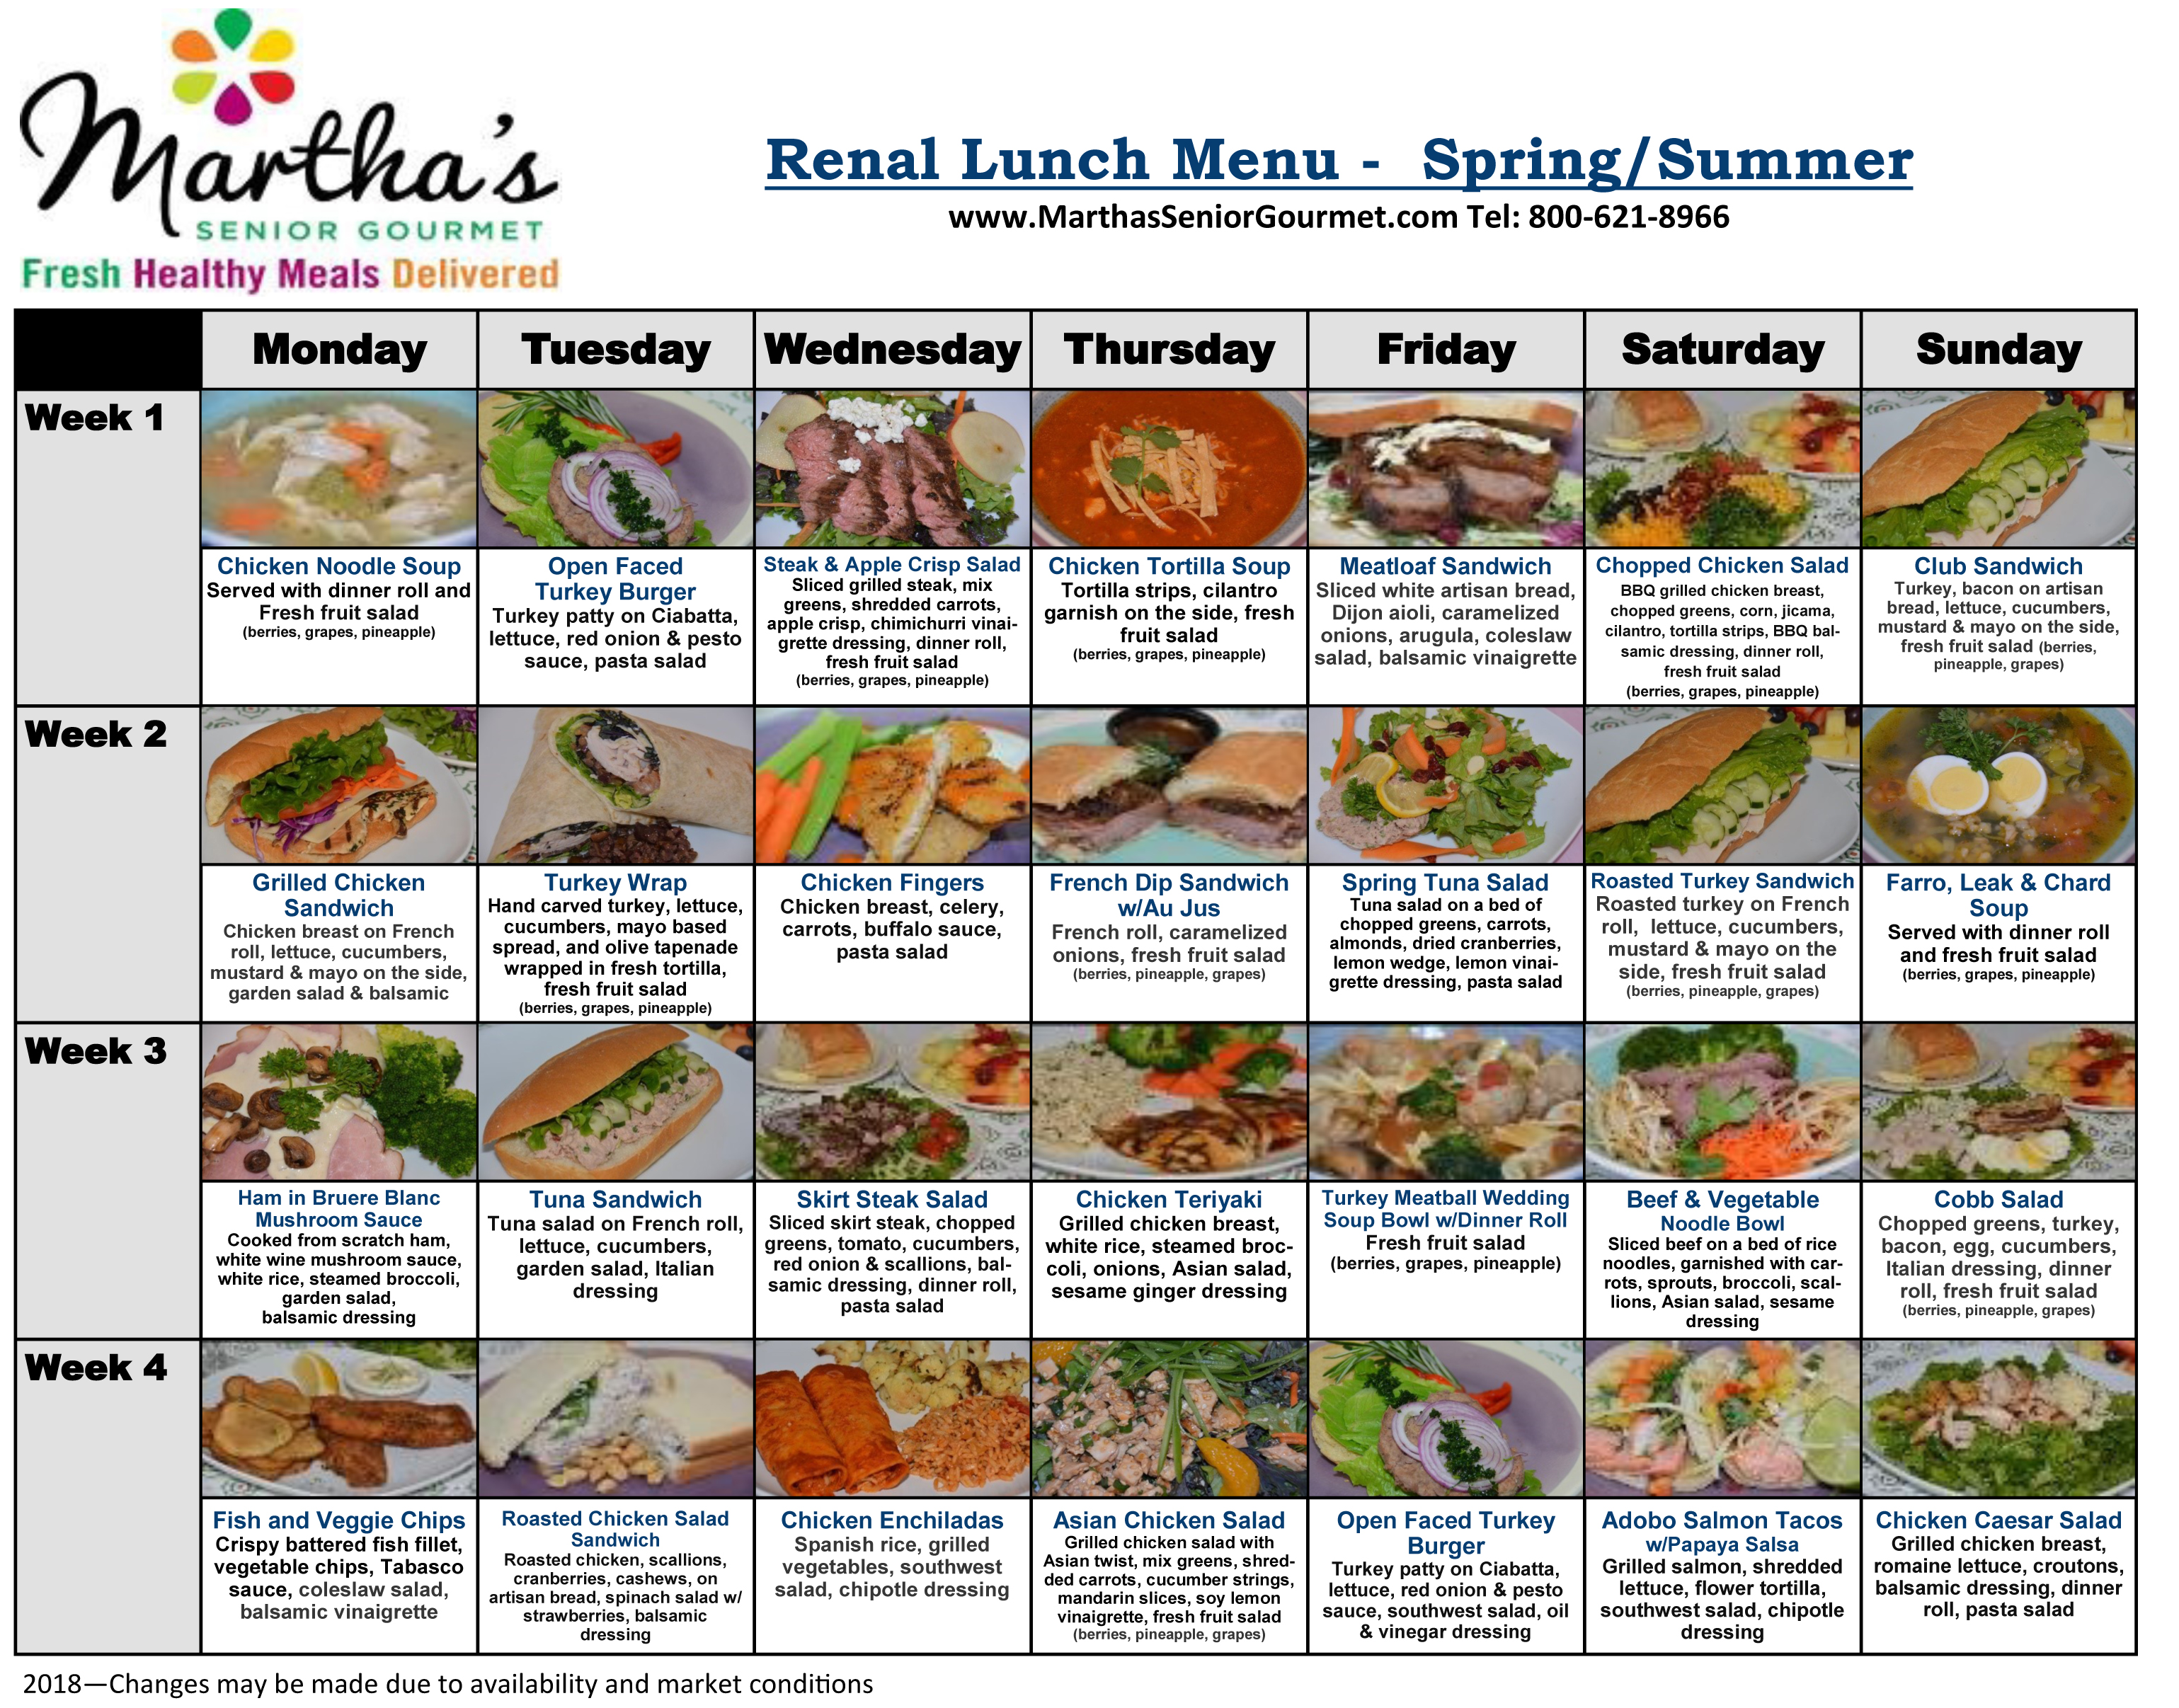 Renal Diabetic Lunch Menu - Spring/Summer